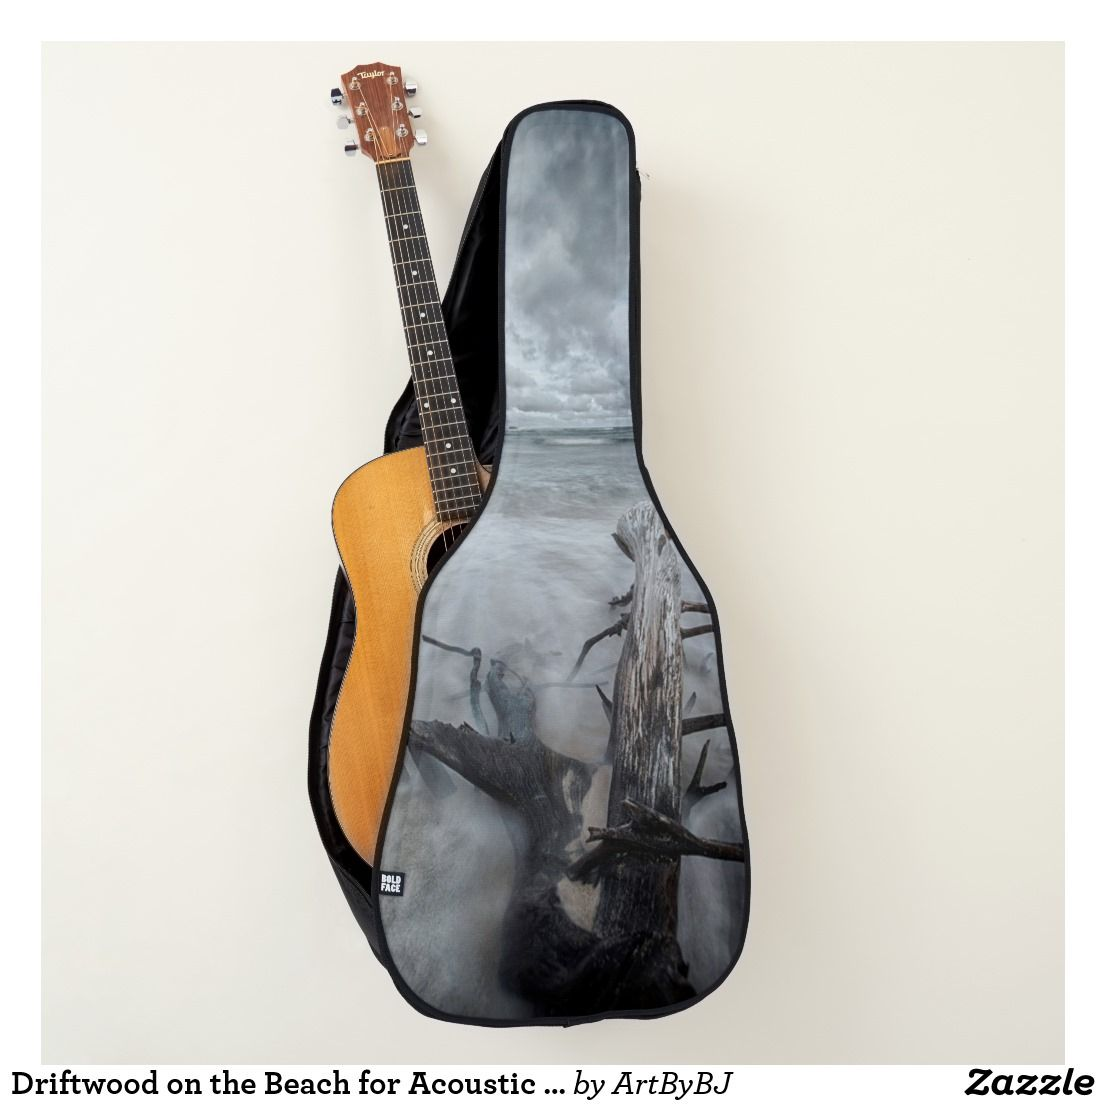 Driftwood On The Beach For Acoustic Or Electric Guitar Case Zazzle Com Electric Guitar Case Guitar Case Guitar